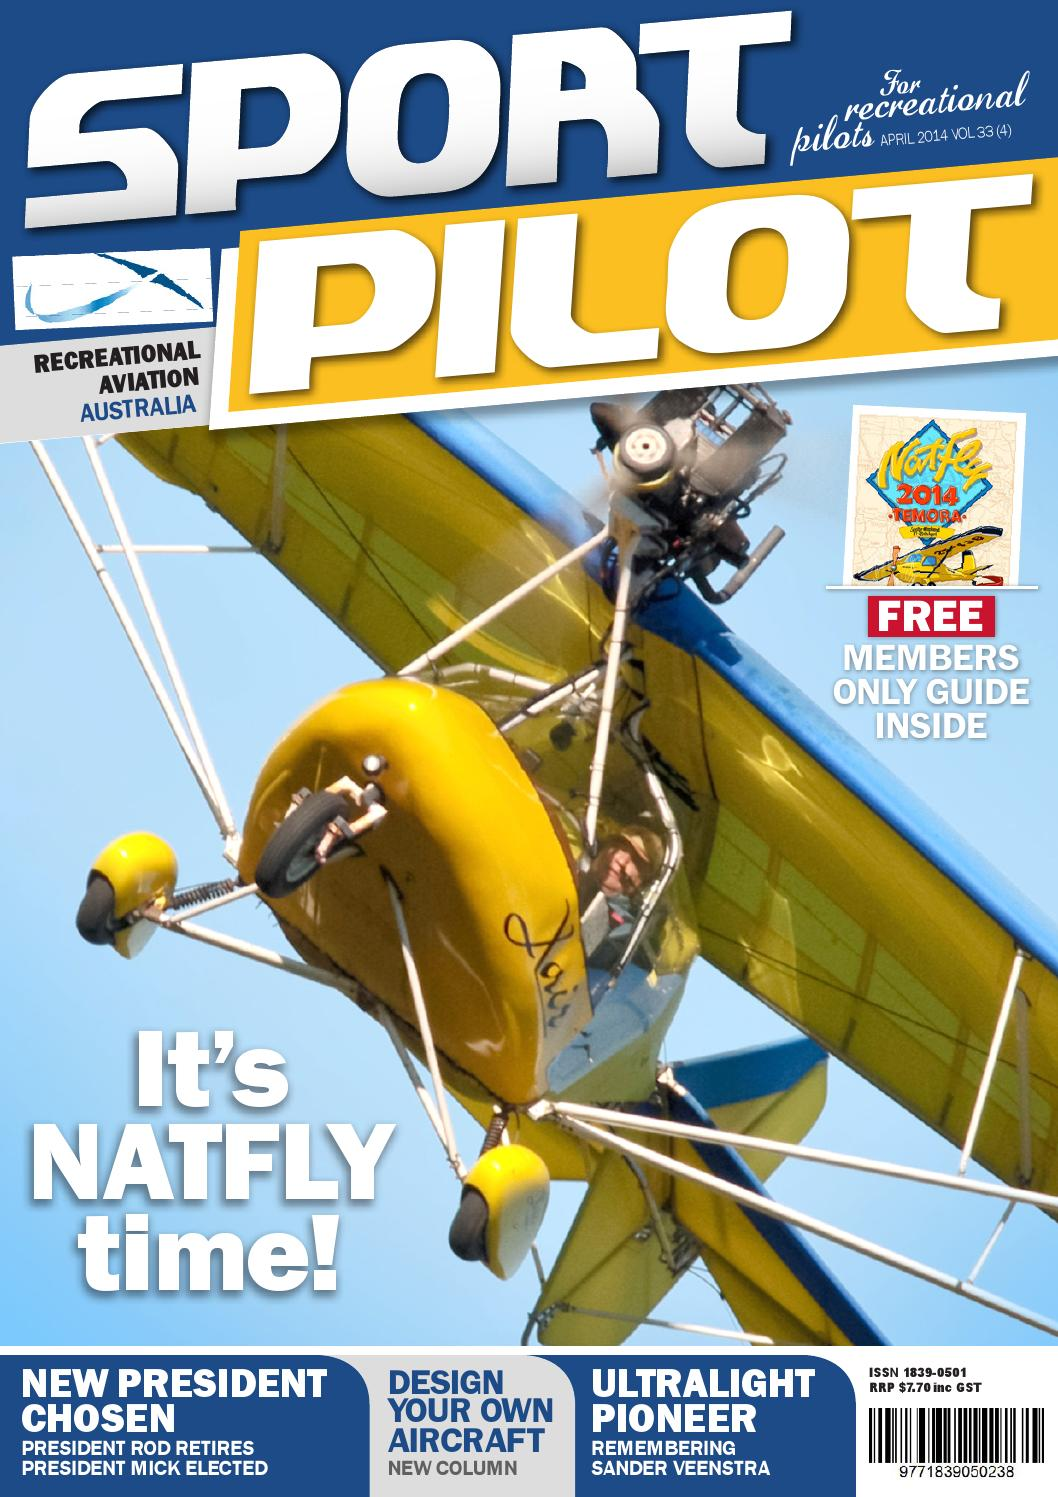 Sport pilot 33 apr 2014 by Recreational Aviation Australia